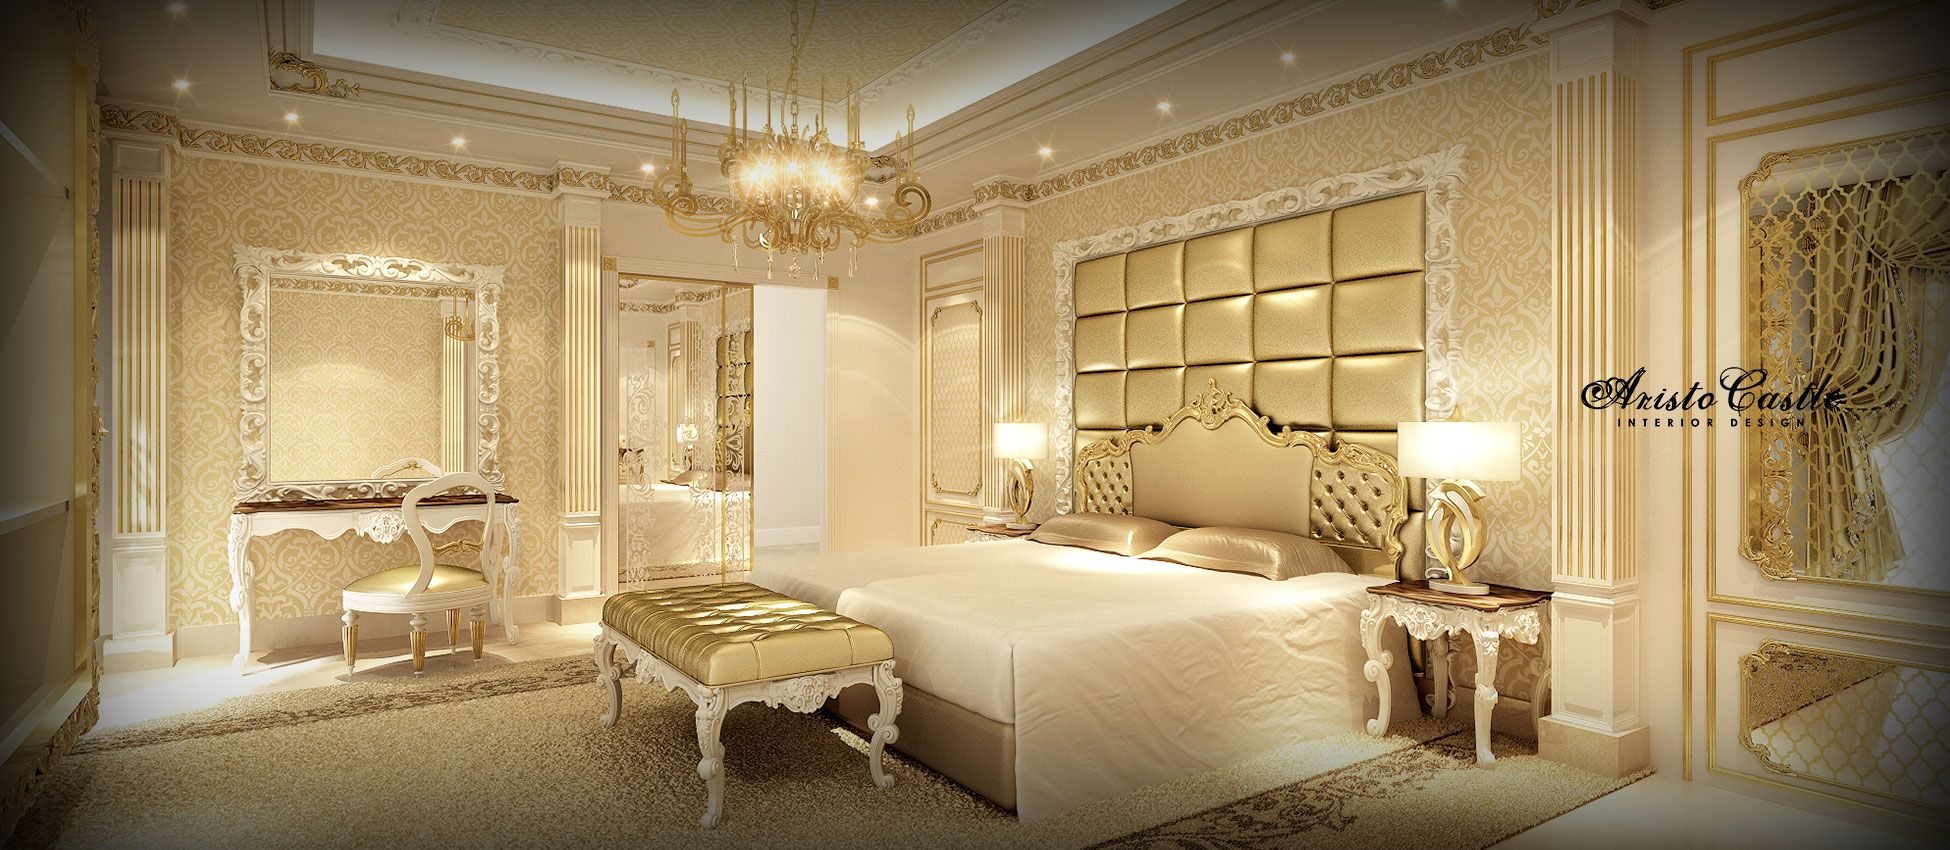 Dubai luxury interior design luxury master bedroom Luxury bedroom ideas pictures